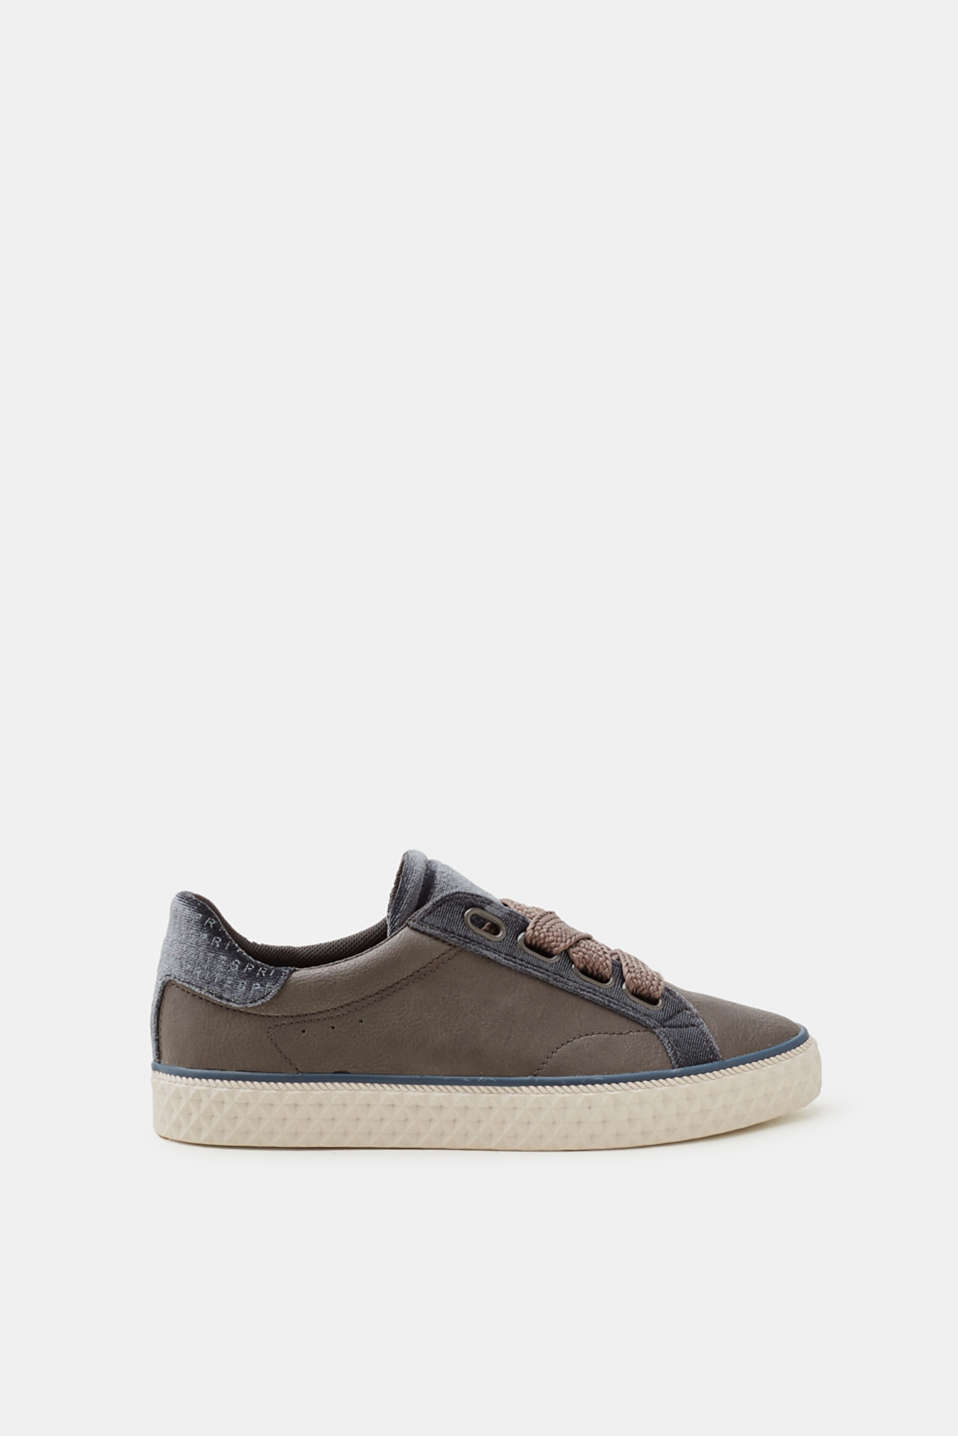 Esprit - Trainers in imitation leather with a velvet trim